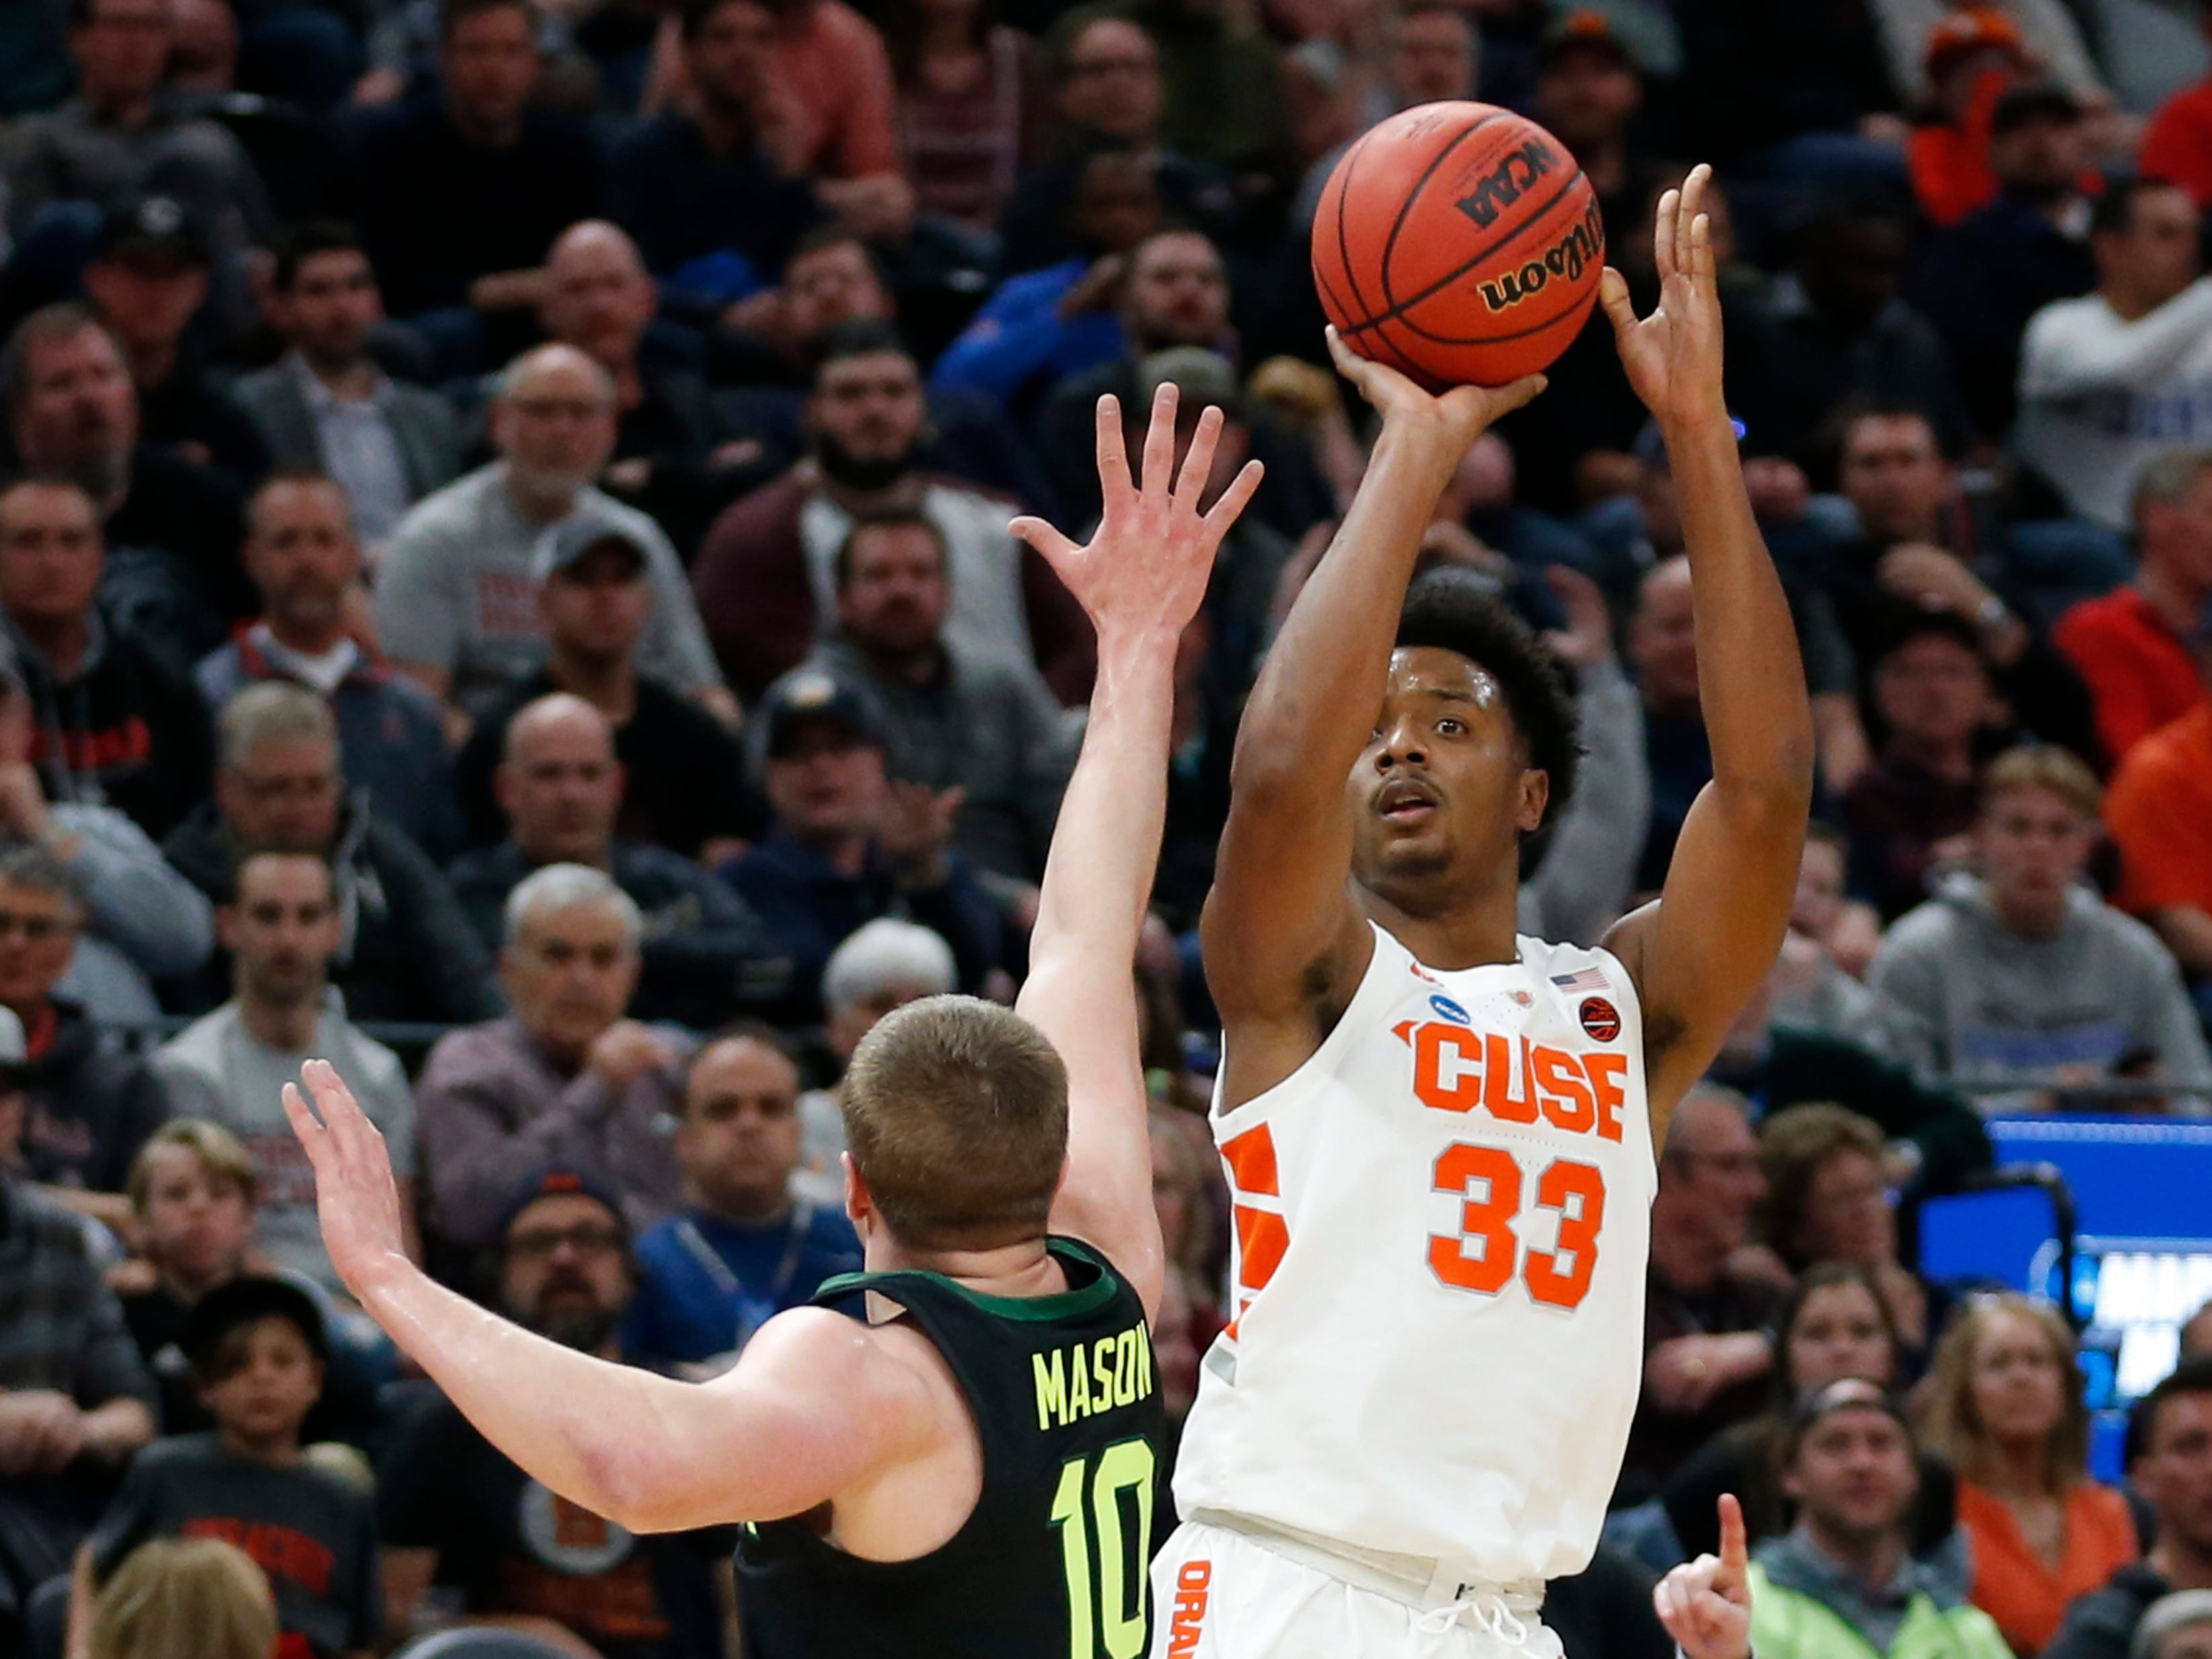 Syracuse forward Elijah Hughes (33) shoots as Baylor guard Makai Mason (10) defends during the first half of a first-round game in the NCAA men's tournament Thursday, March 21, 2019, in Salt Lake City. Hughes scored 18 points in the first half.